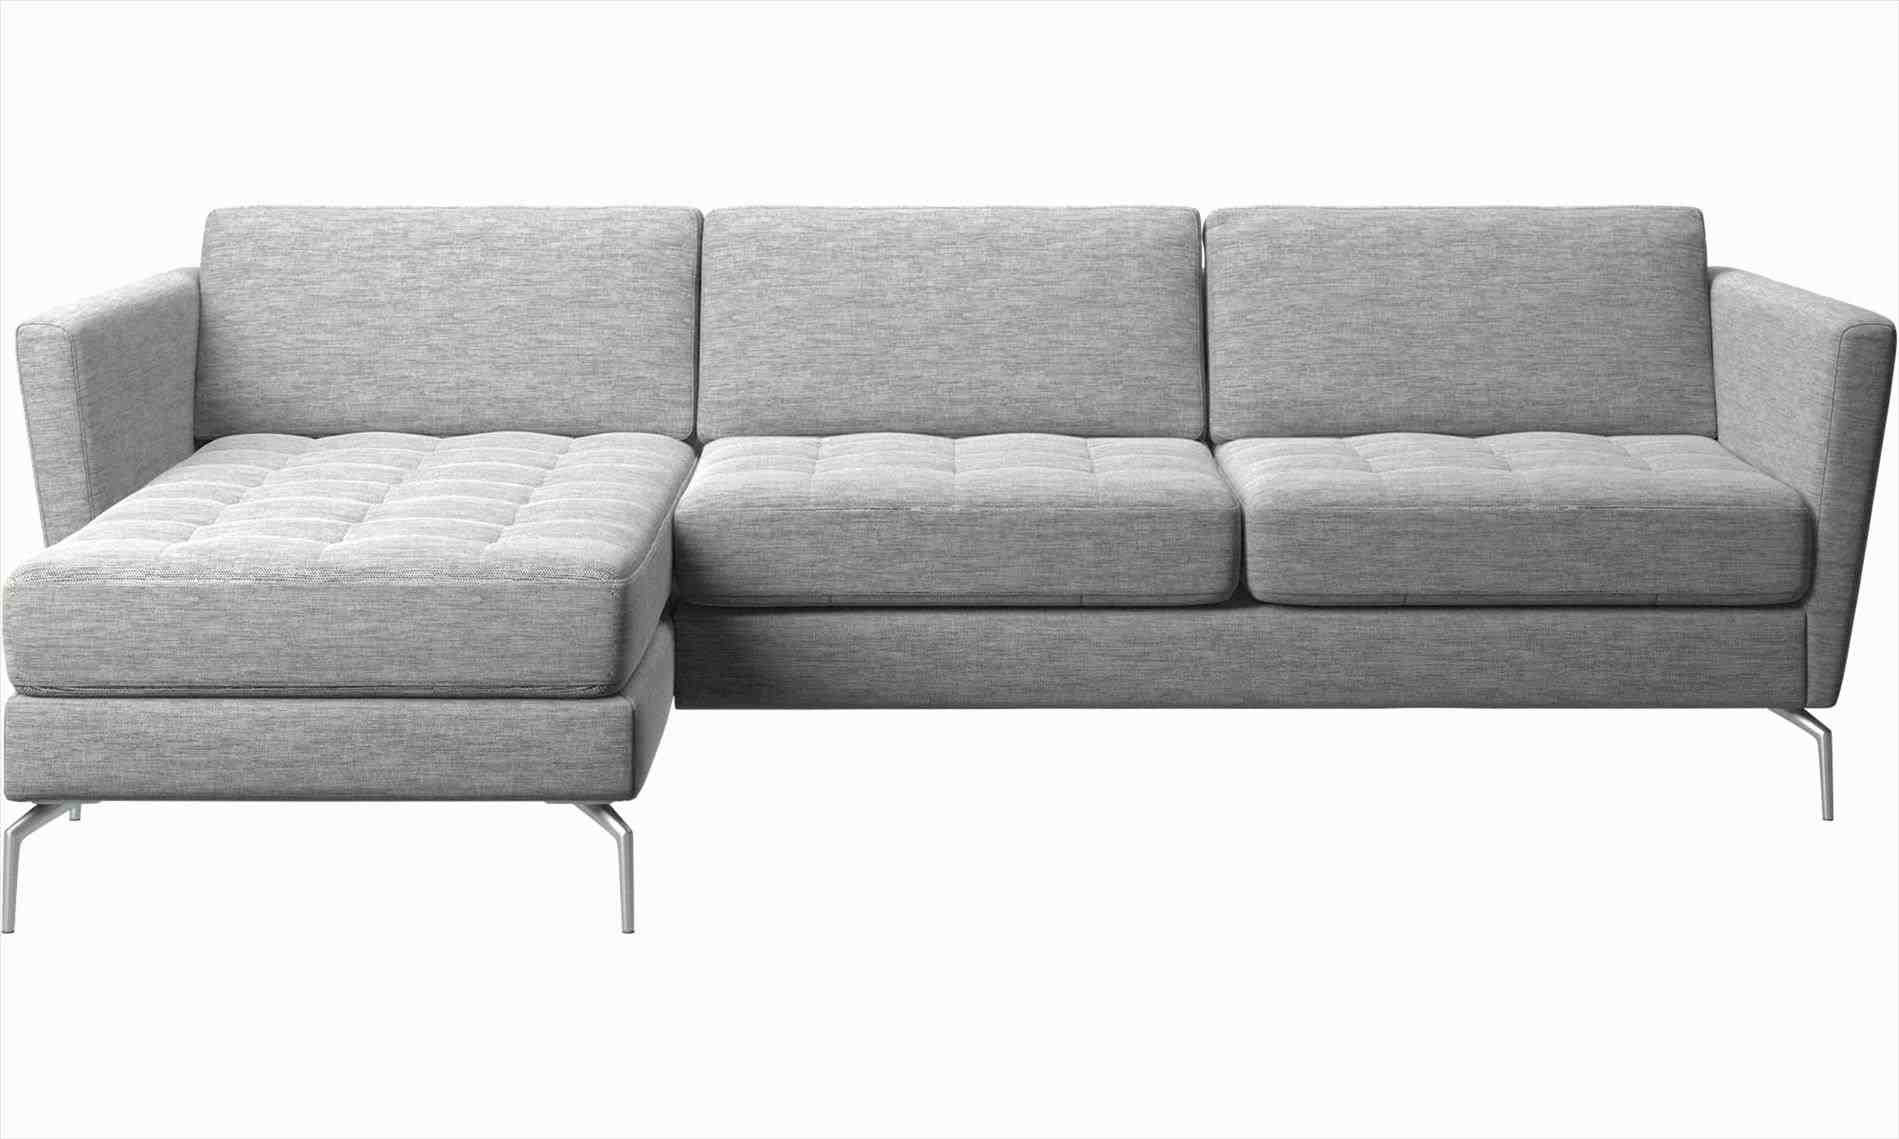 Sofa 3 Plazas Chaise Longue Encantador sofa Chaise Longue 5 Plazas Of 37  atractivo sofa 3 Plazas Chaise Longue